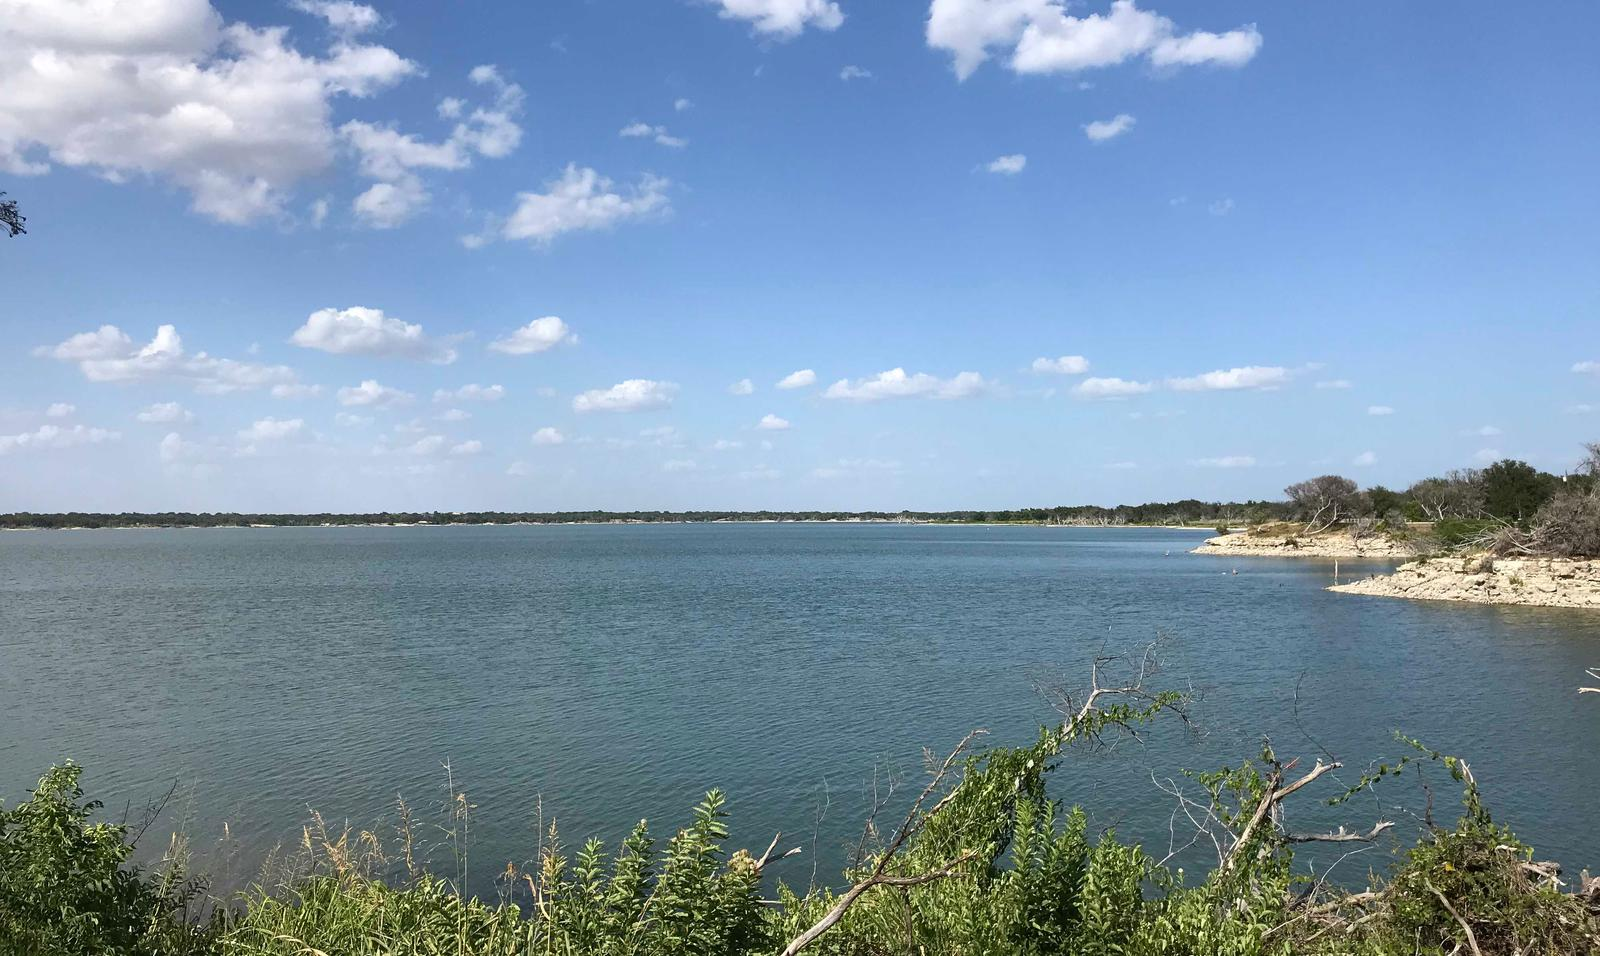 View of Waco Lake at Reynolds Creek park